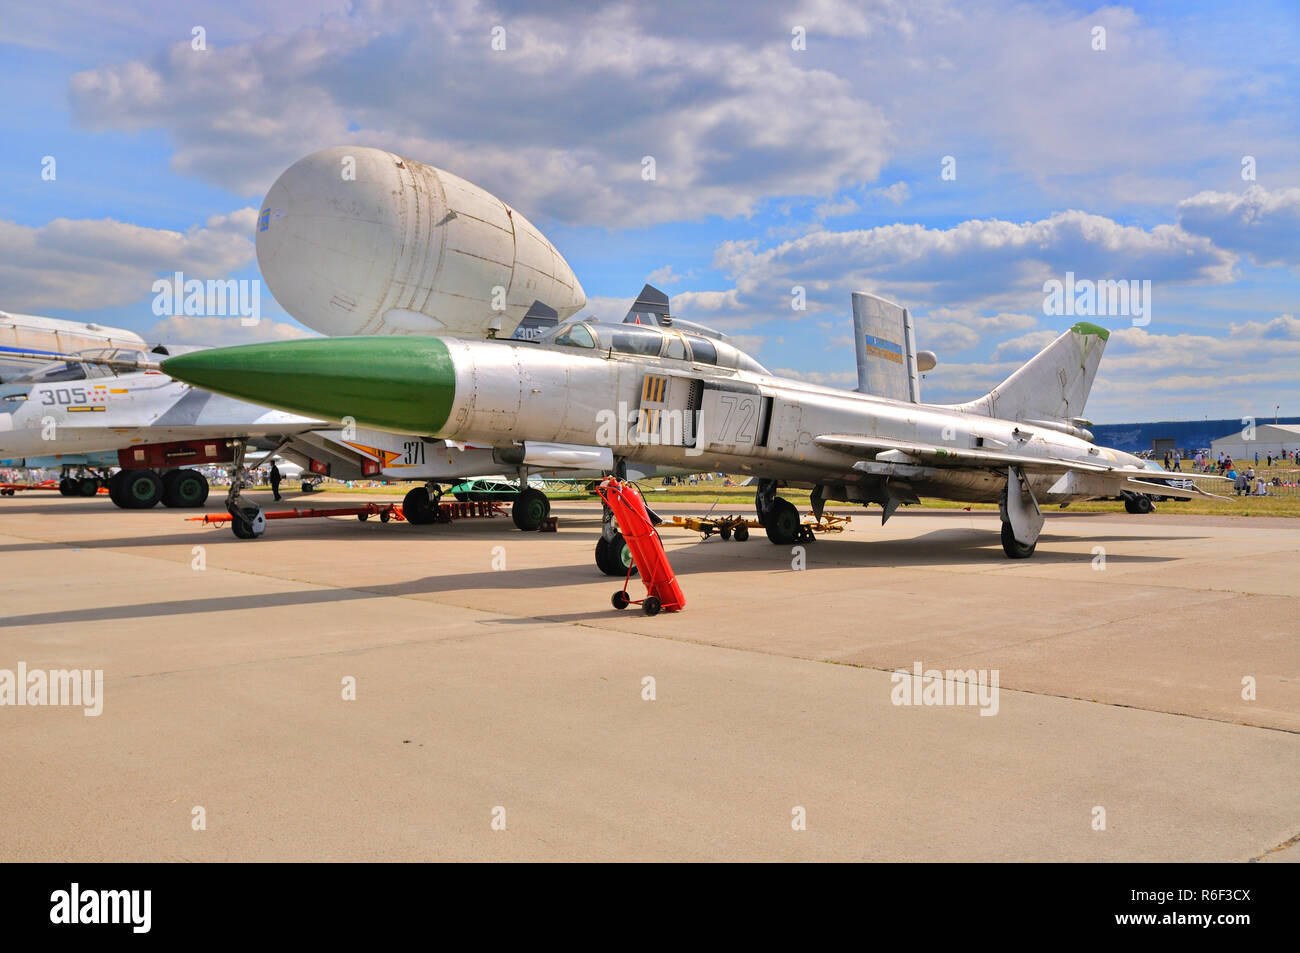 MOSCOW, RUSSIA - AUG 2015: supersonic interceptor Su-15 Flagon presented at the 12th MAKS-2015 International Aviation and Space Show on August 28, 201 Stock Photo